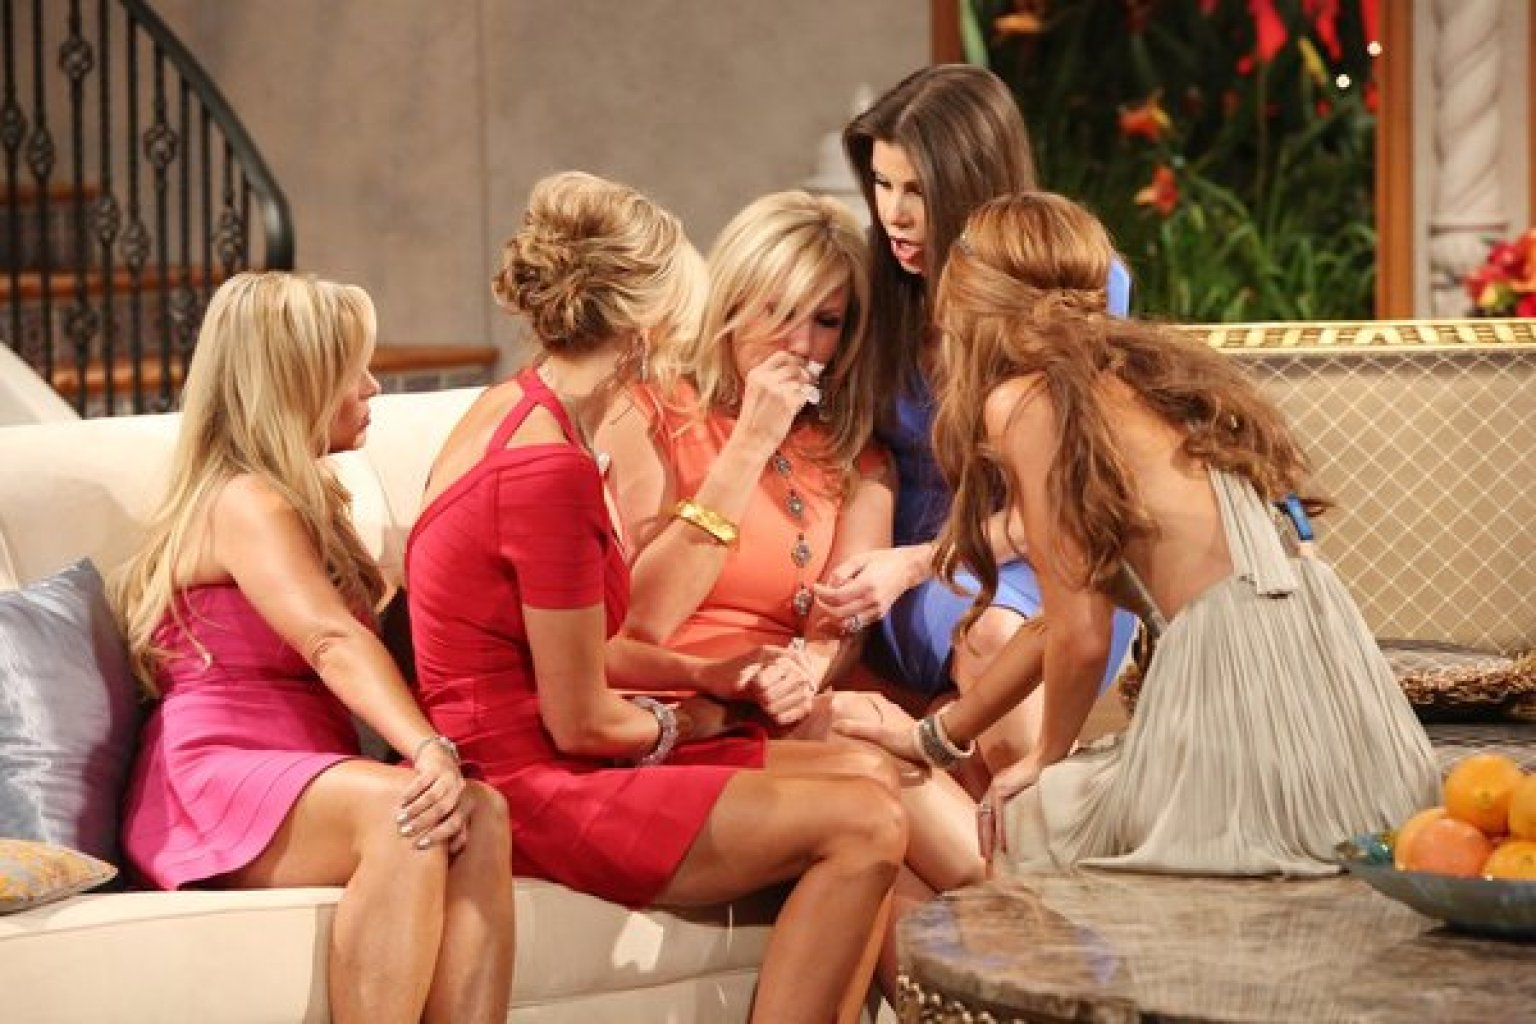 Orange County Housewives 'the Real Housewives of Orange